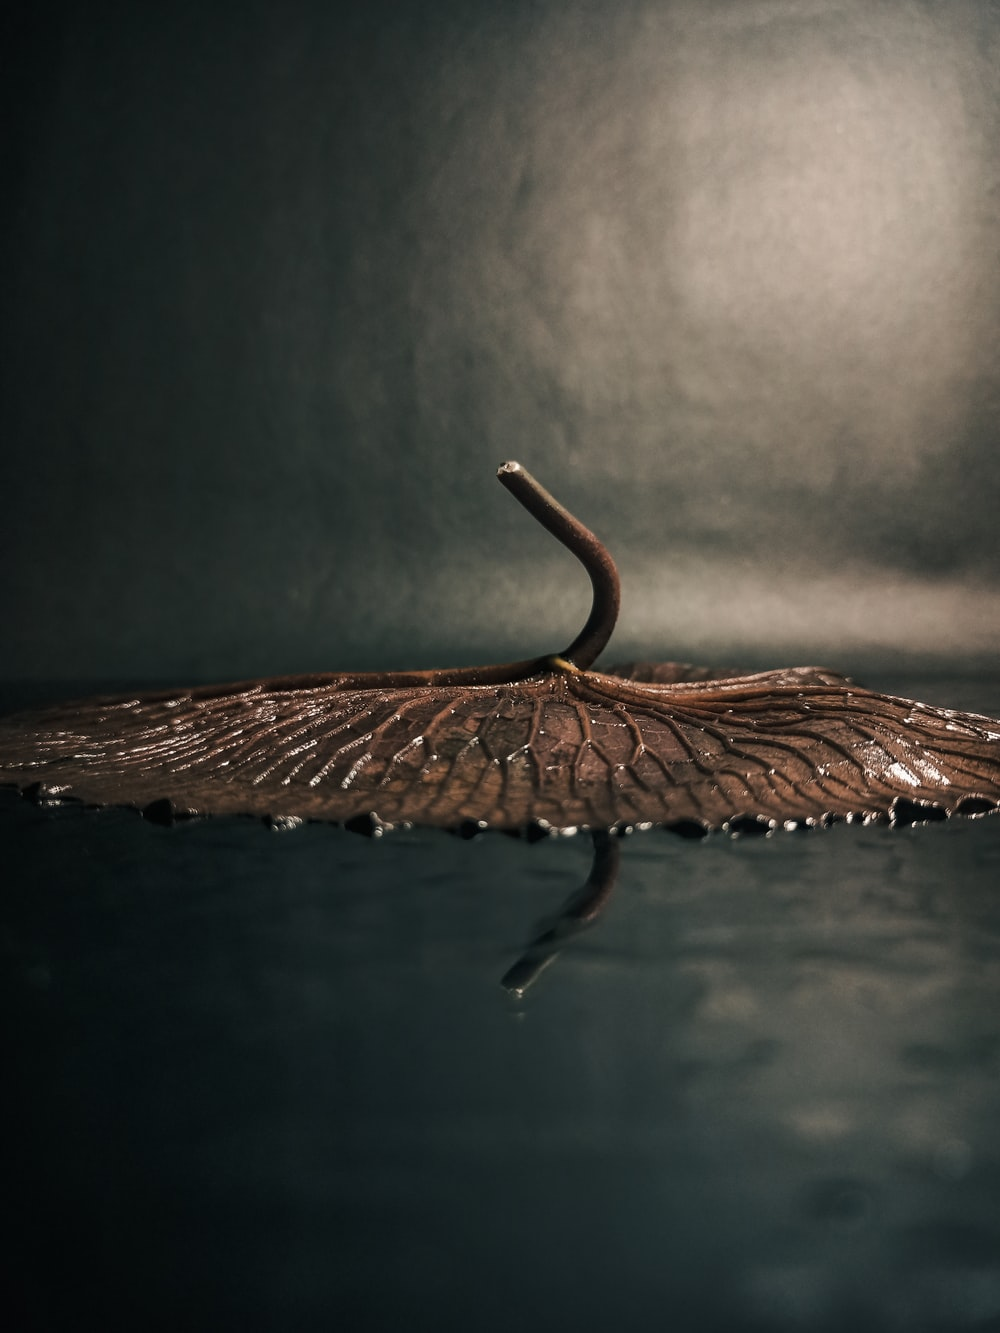 brown leaf on water during daytime